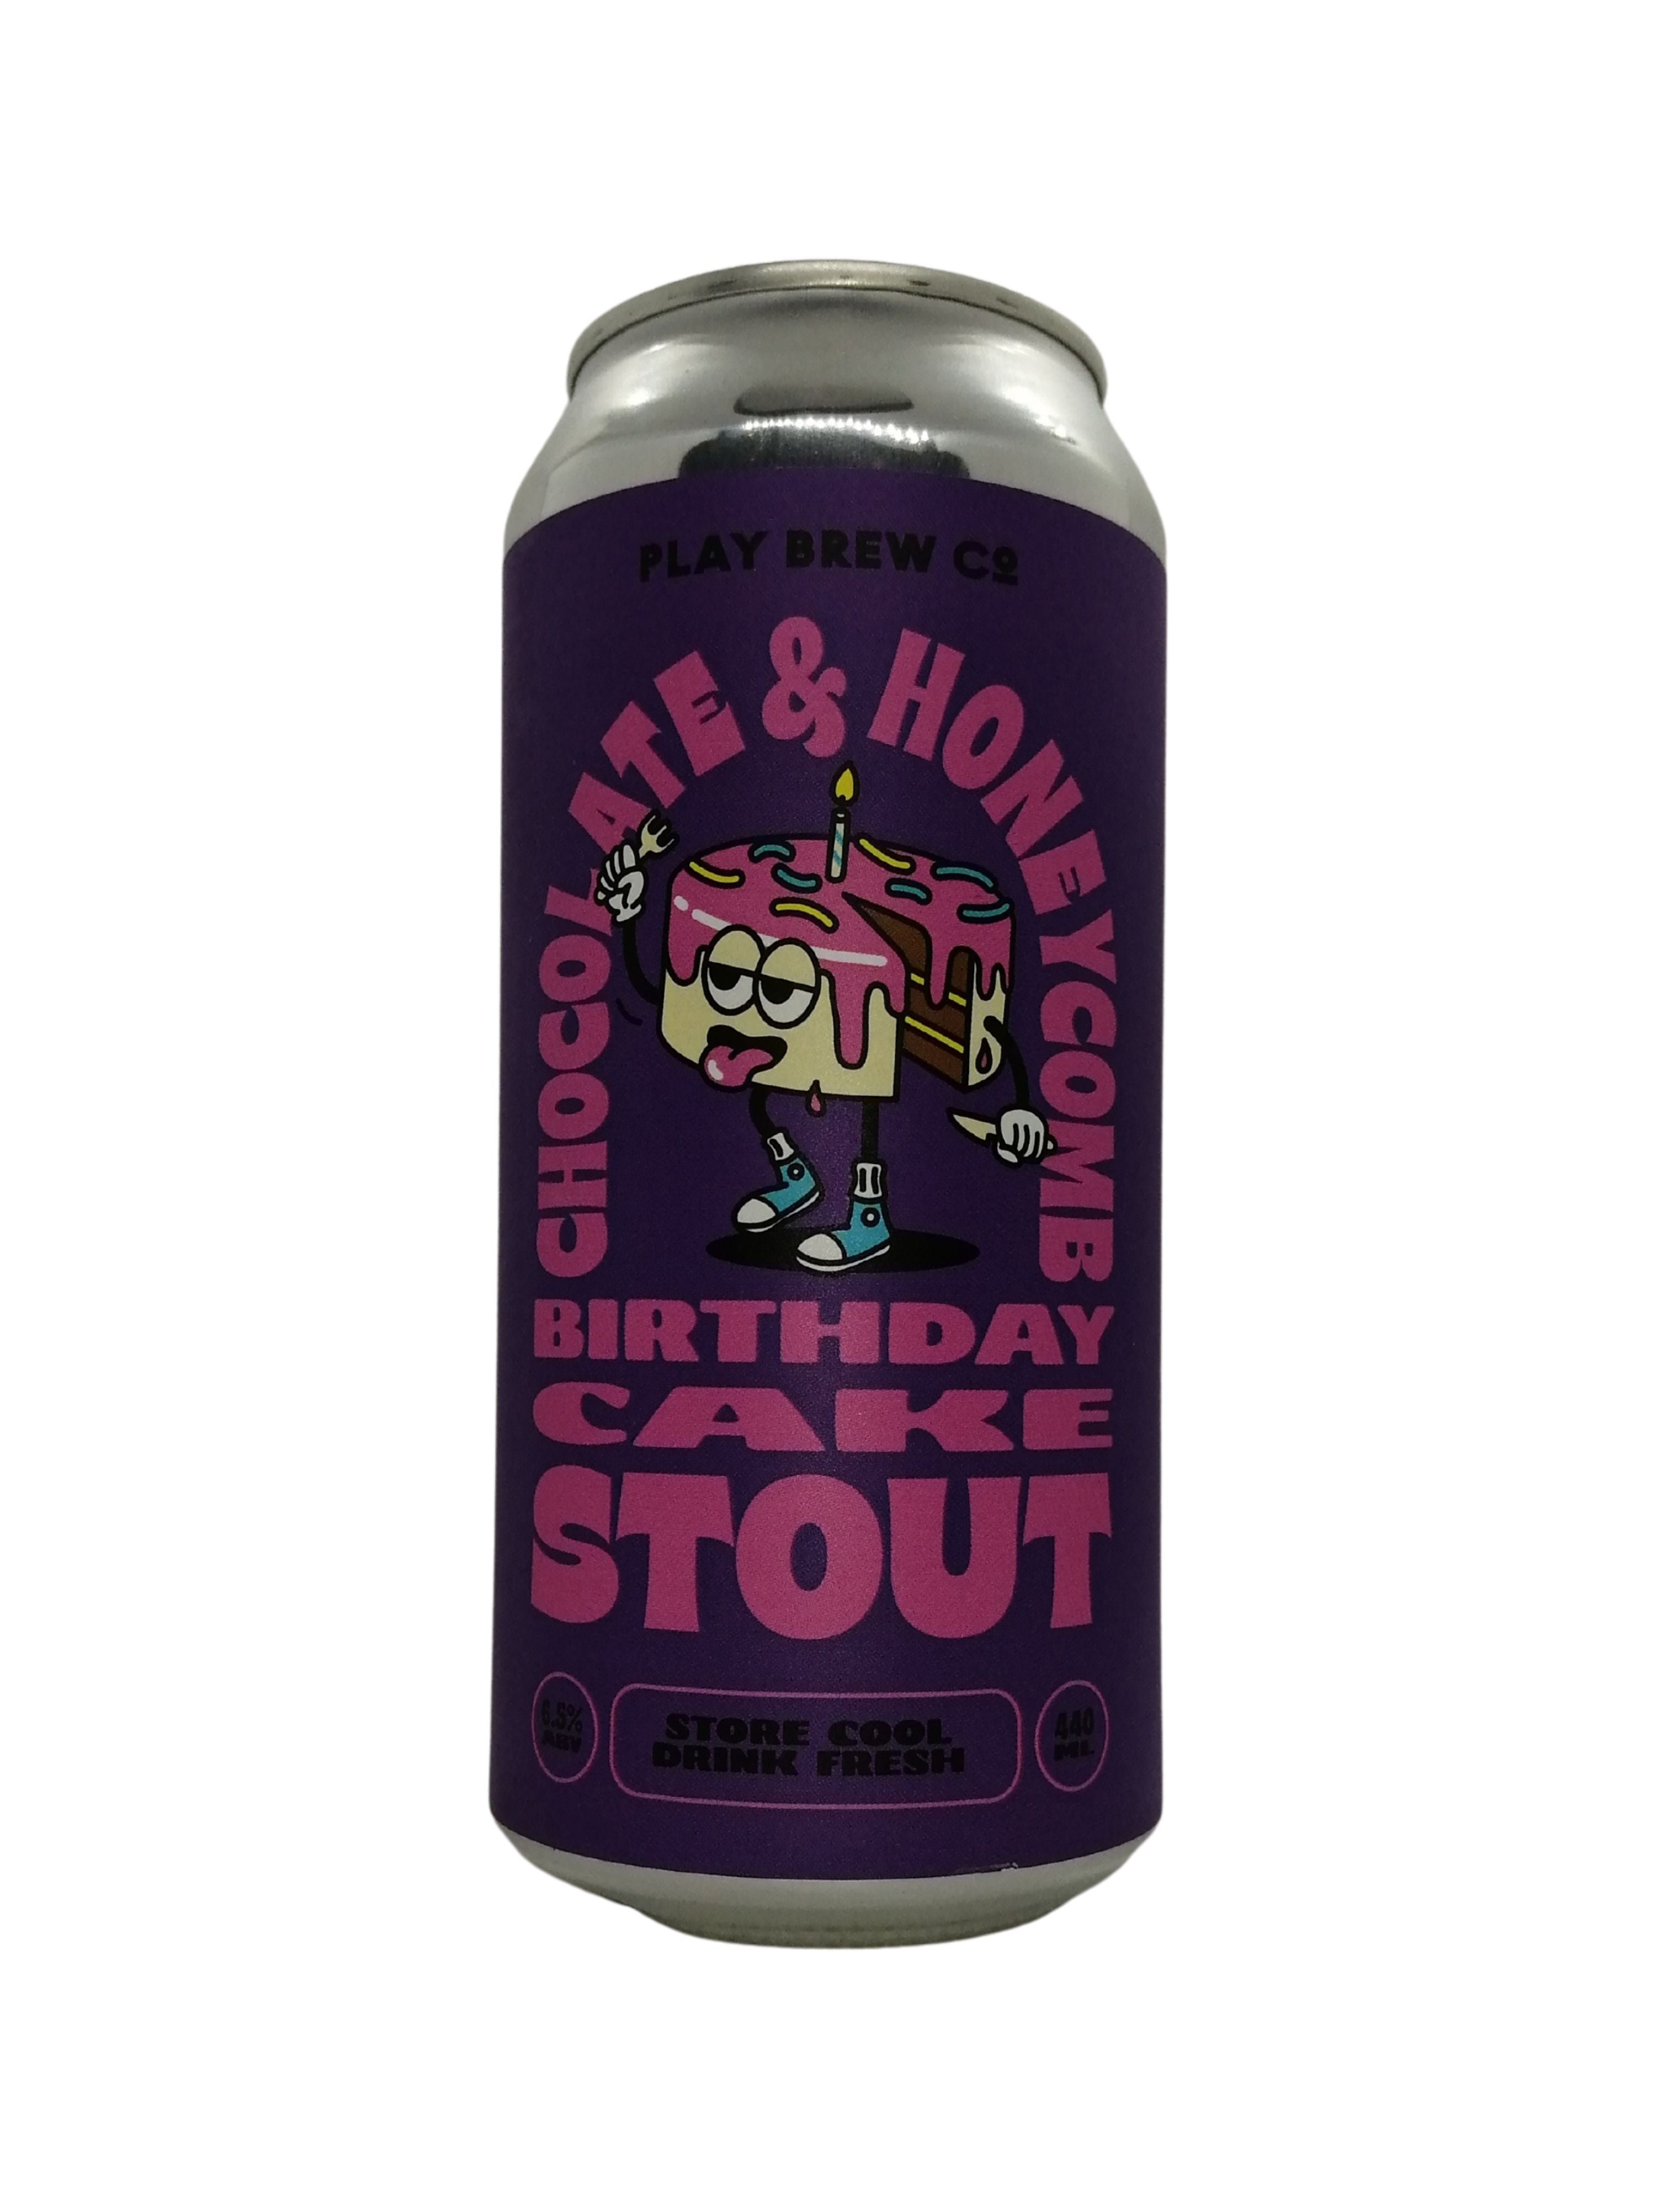 Play Brew - Chocolate & Honeycomb Birthday Cake Stout - Stout - 6.5% (Brand New)